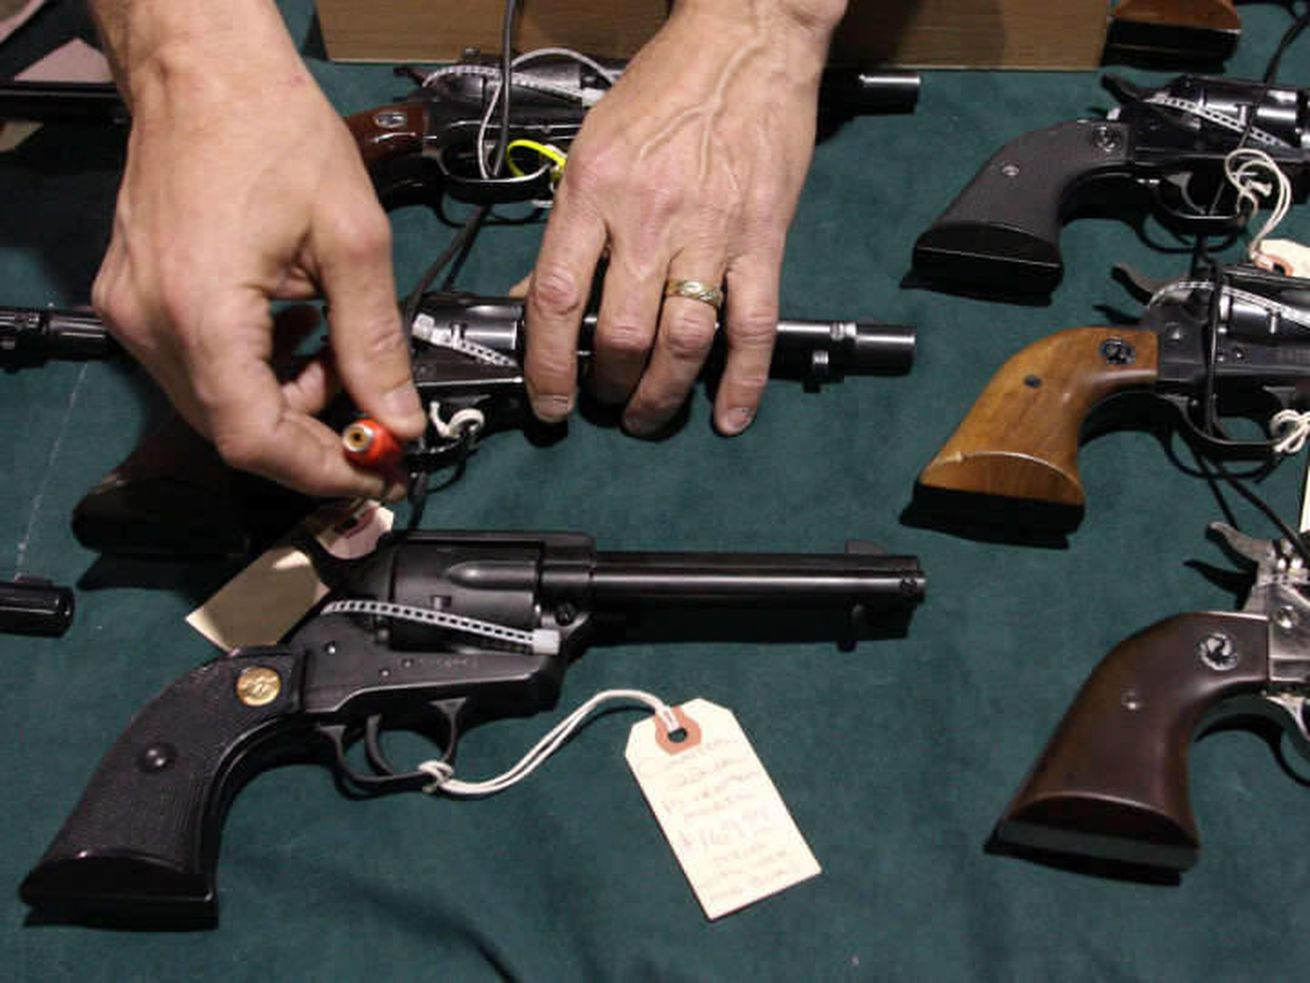 What can really be done about gun control?